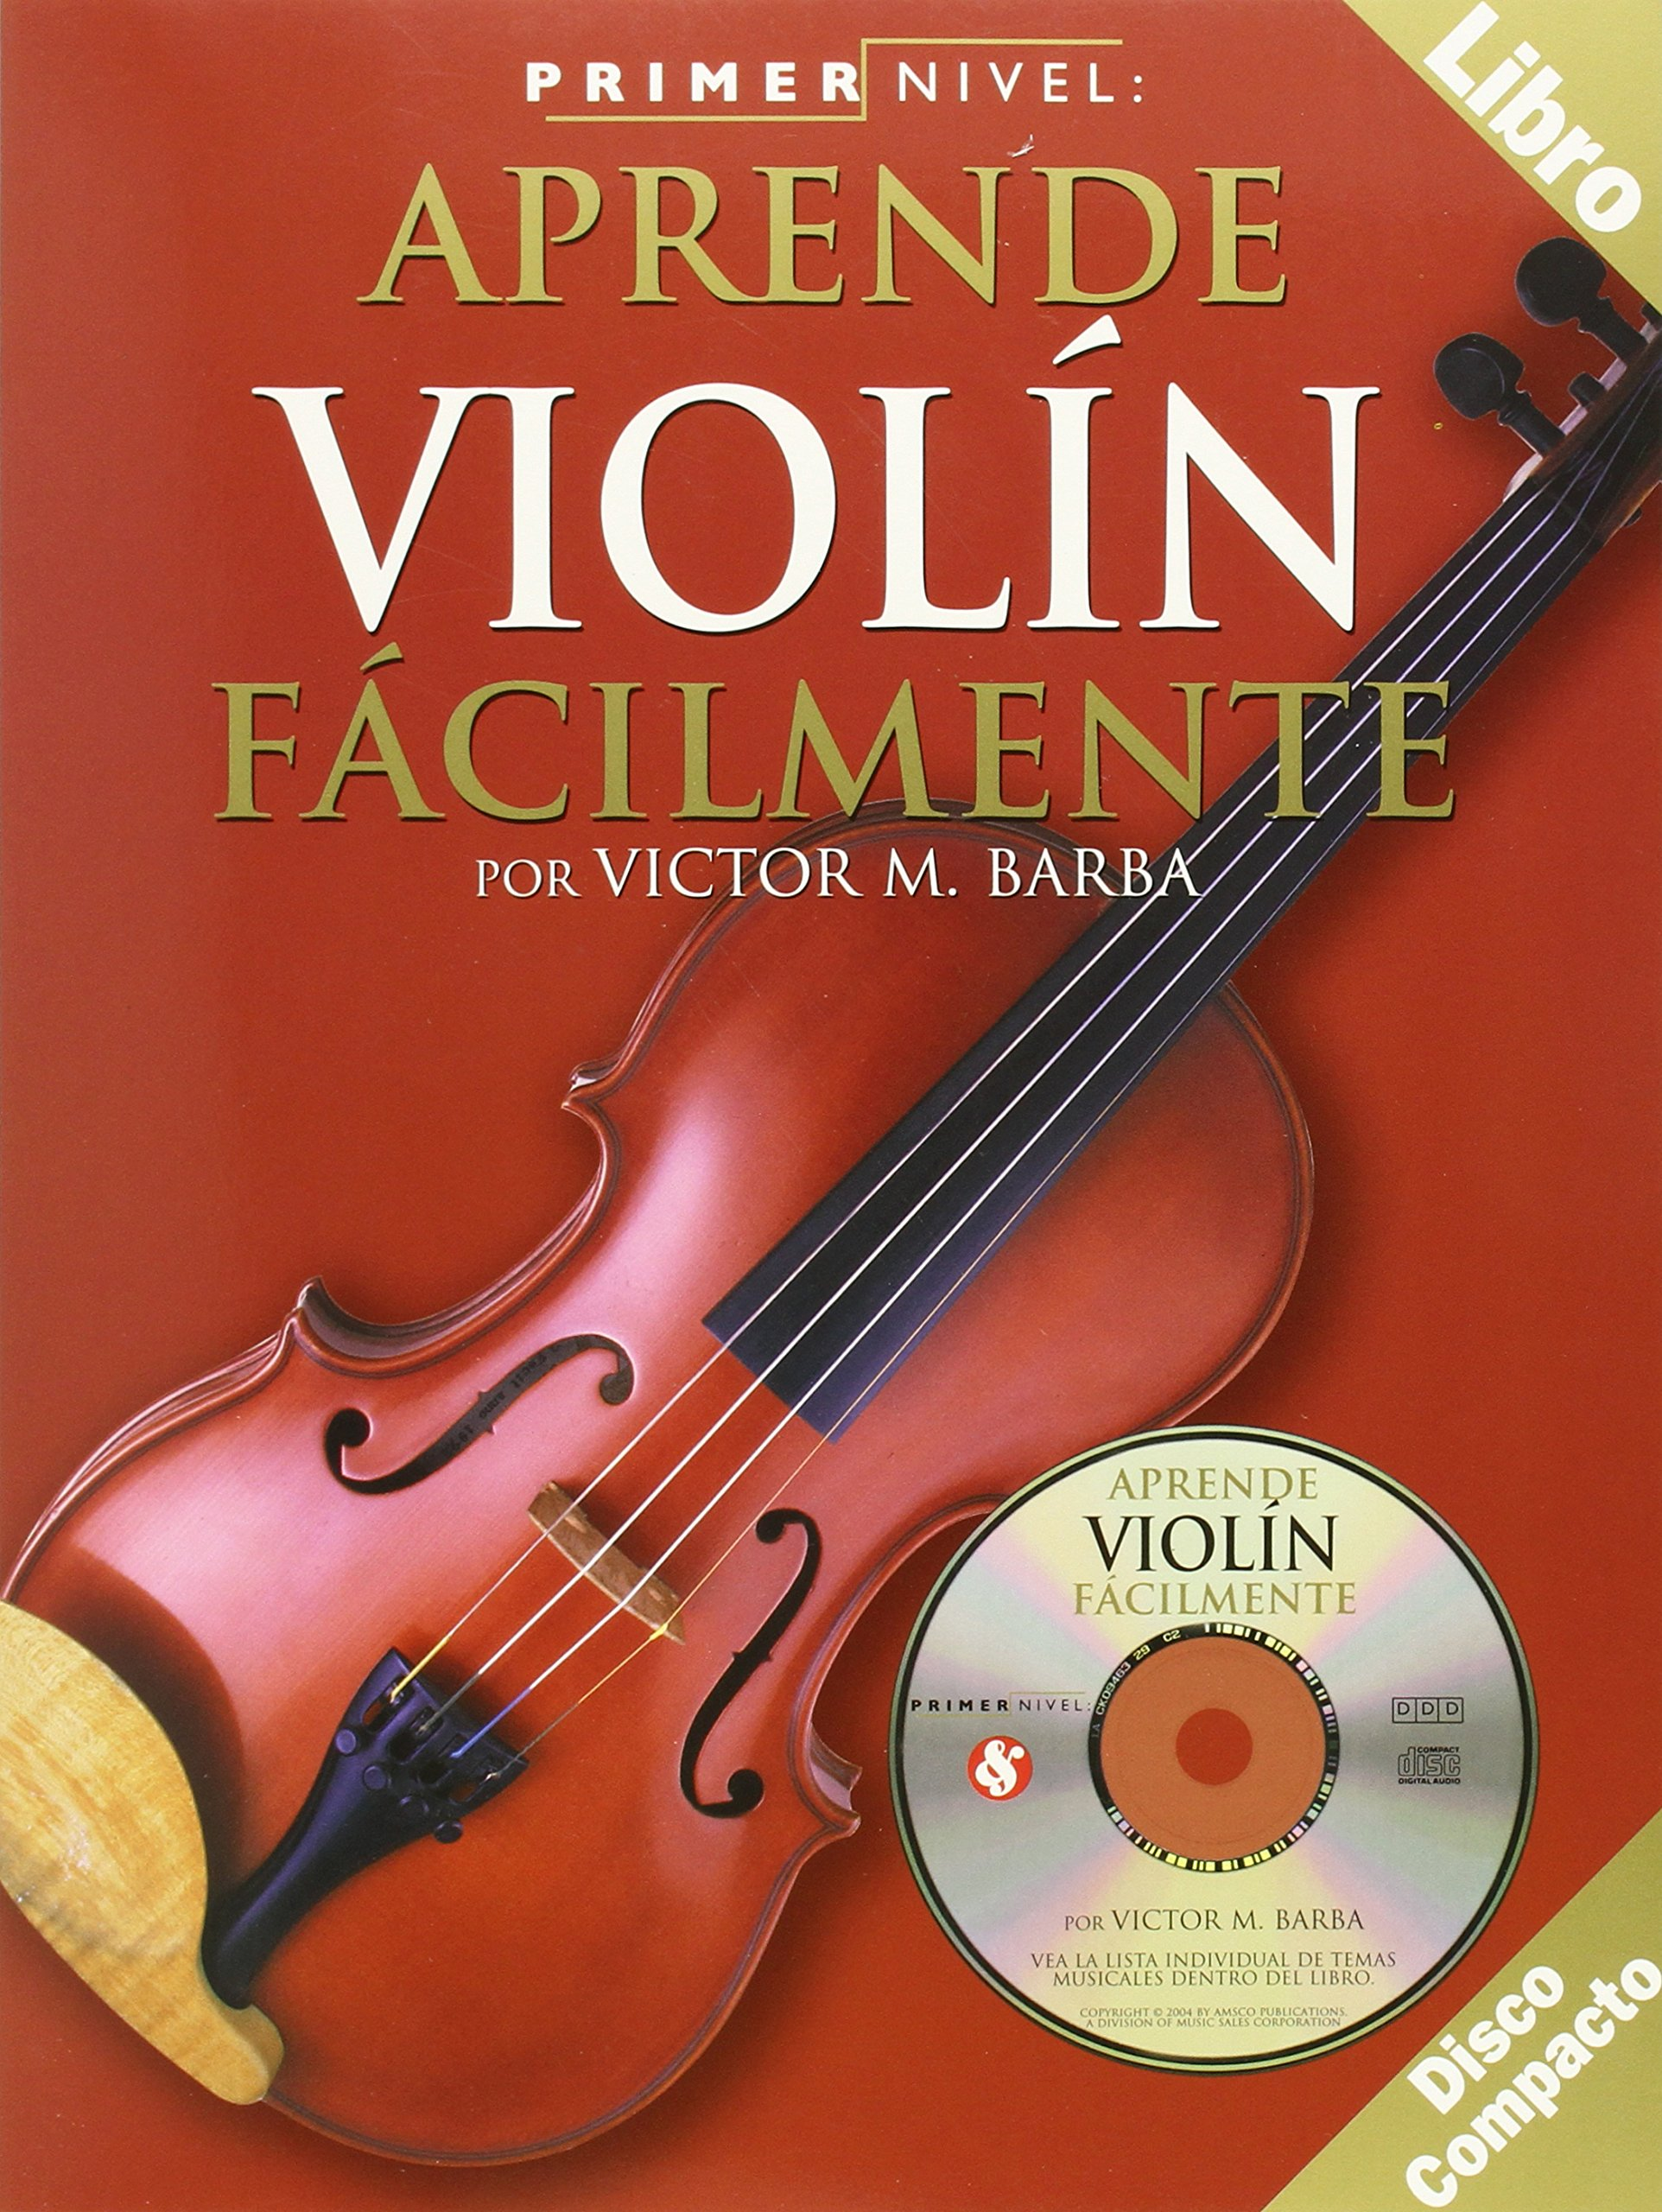 Primer Nivel: Aprende Violin Facilmente: Amazon.es: Barba, Victor ...